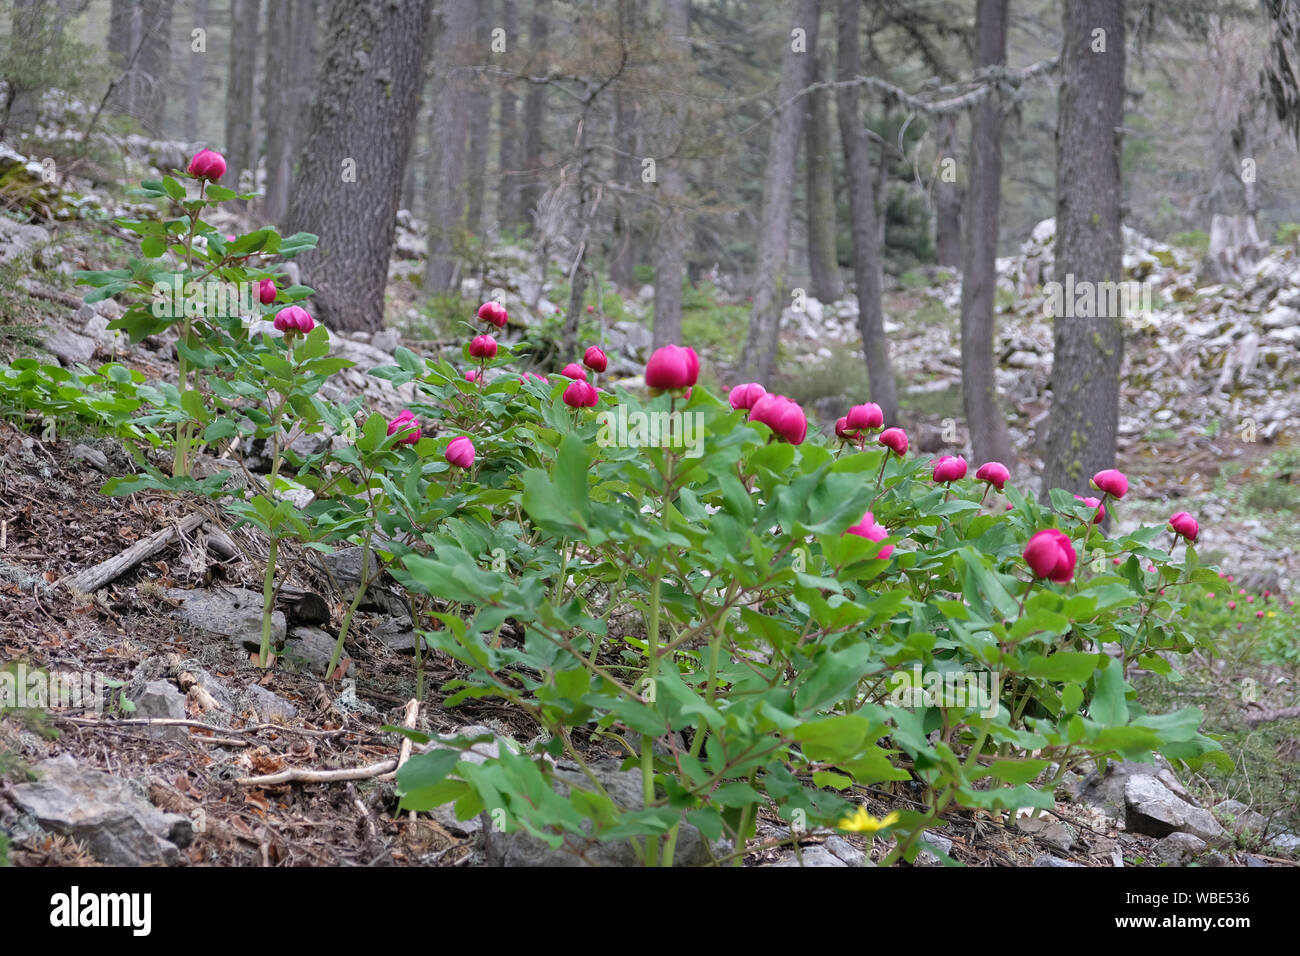 cedar forest in antalya looks better with peony flowers Stock Photo